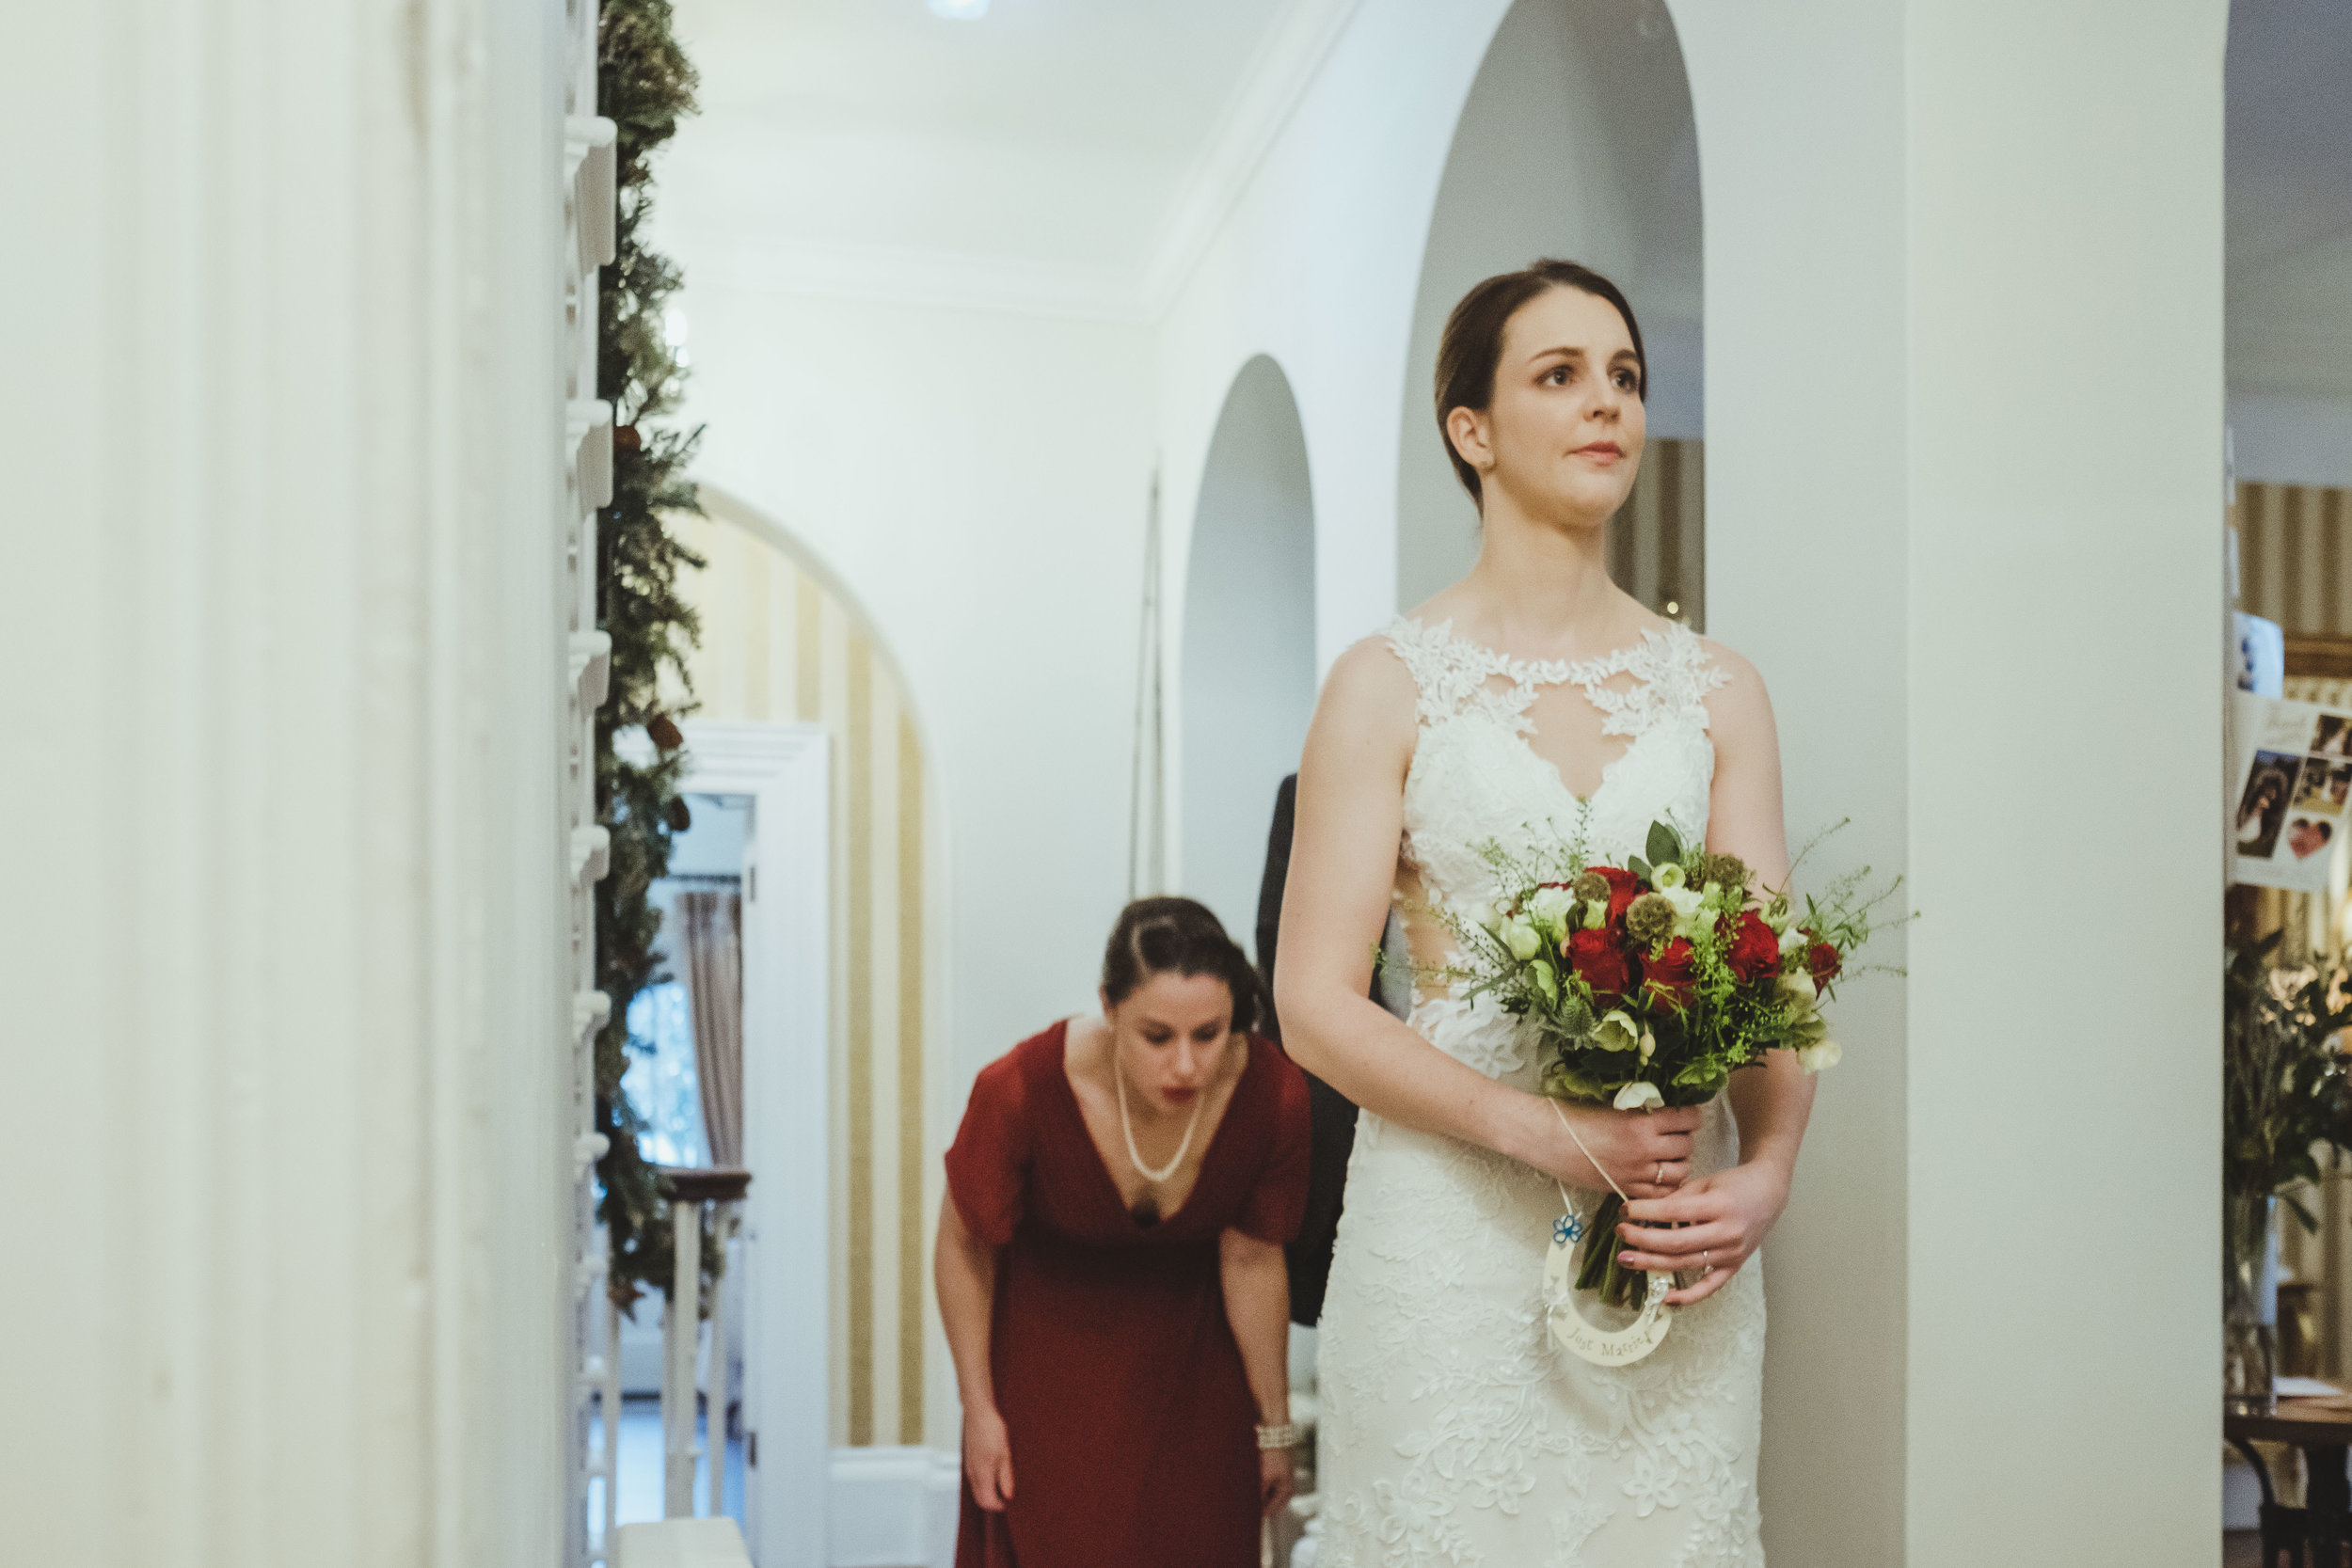 Bride's dress being prepped by bridesmaid before wedding ceremony